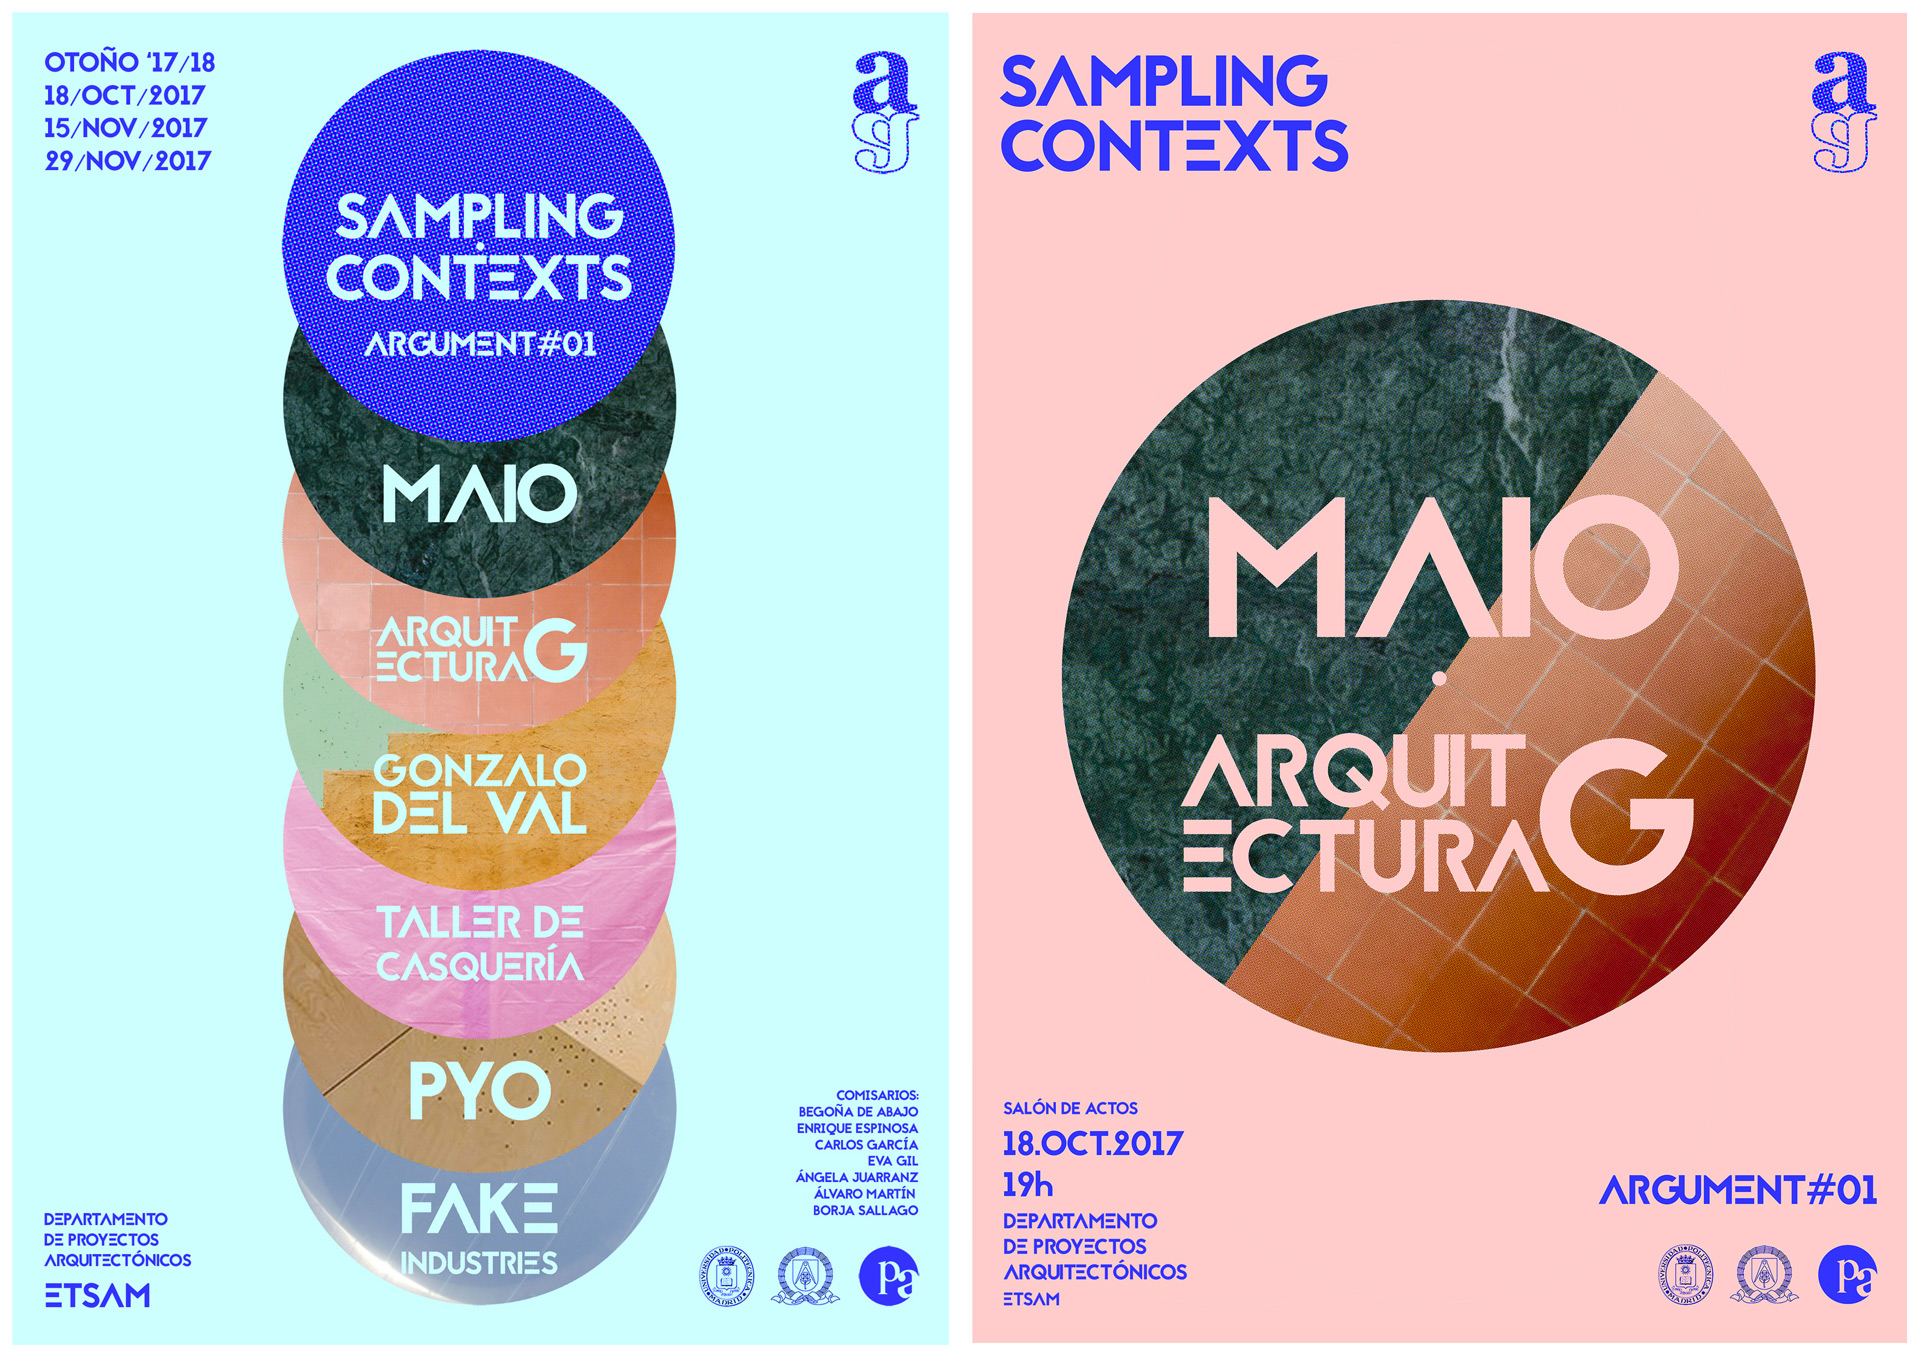 SAMPLING-CONTEXTS_MAIO